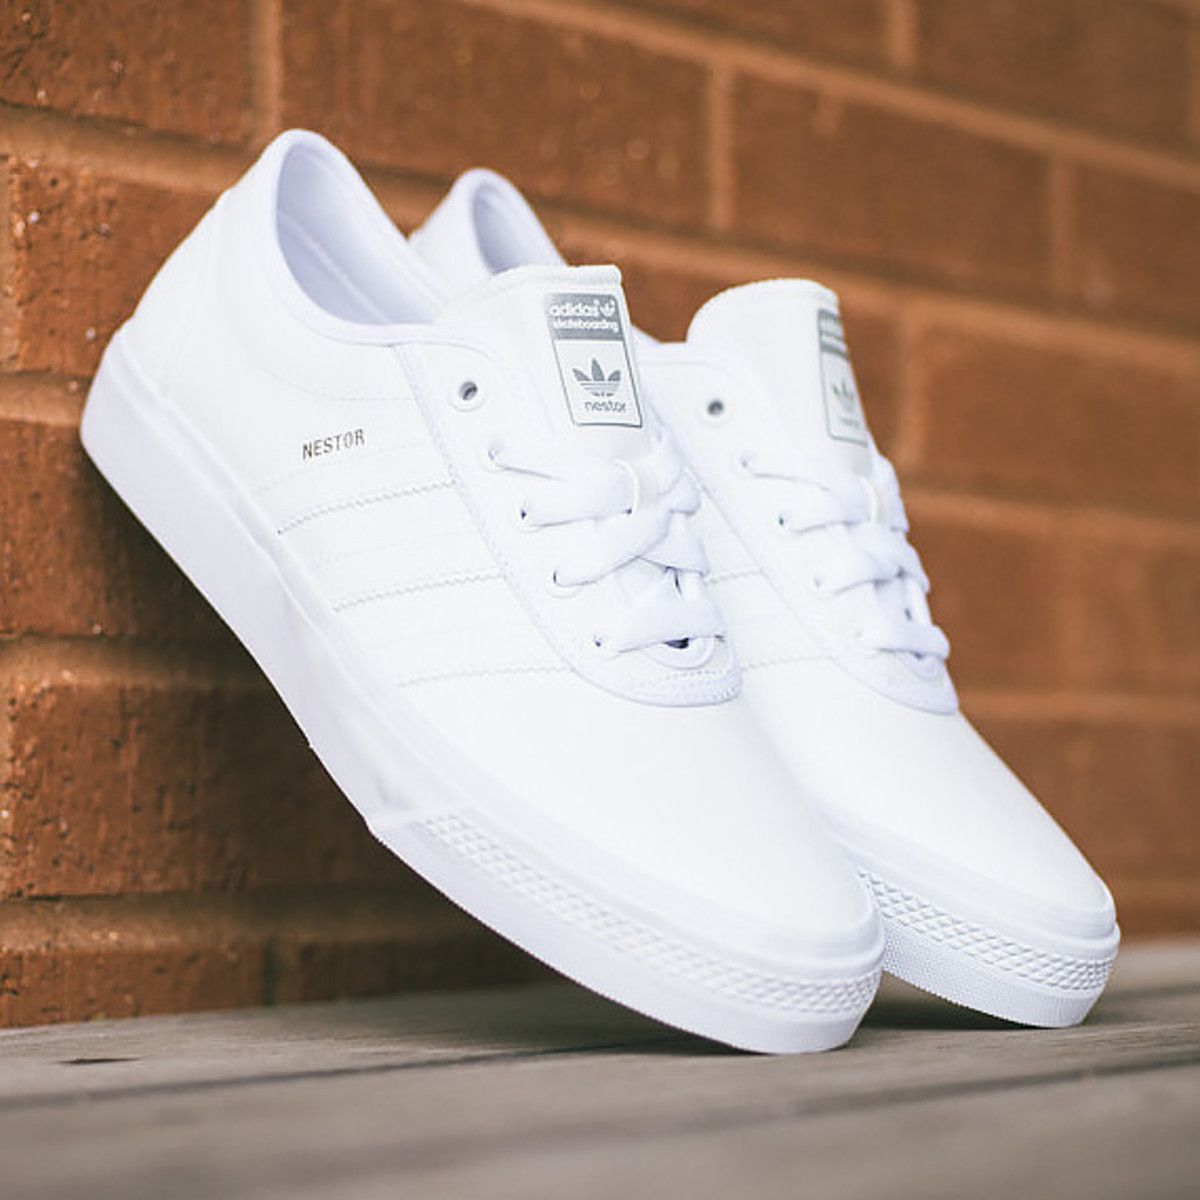 "adidas Skateboarding adi-Ease Nestor - ""All White"" 